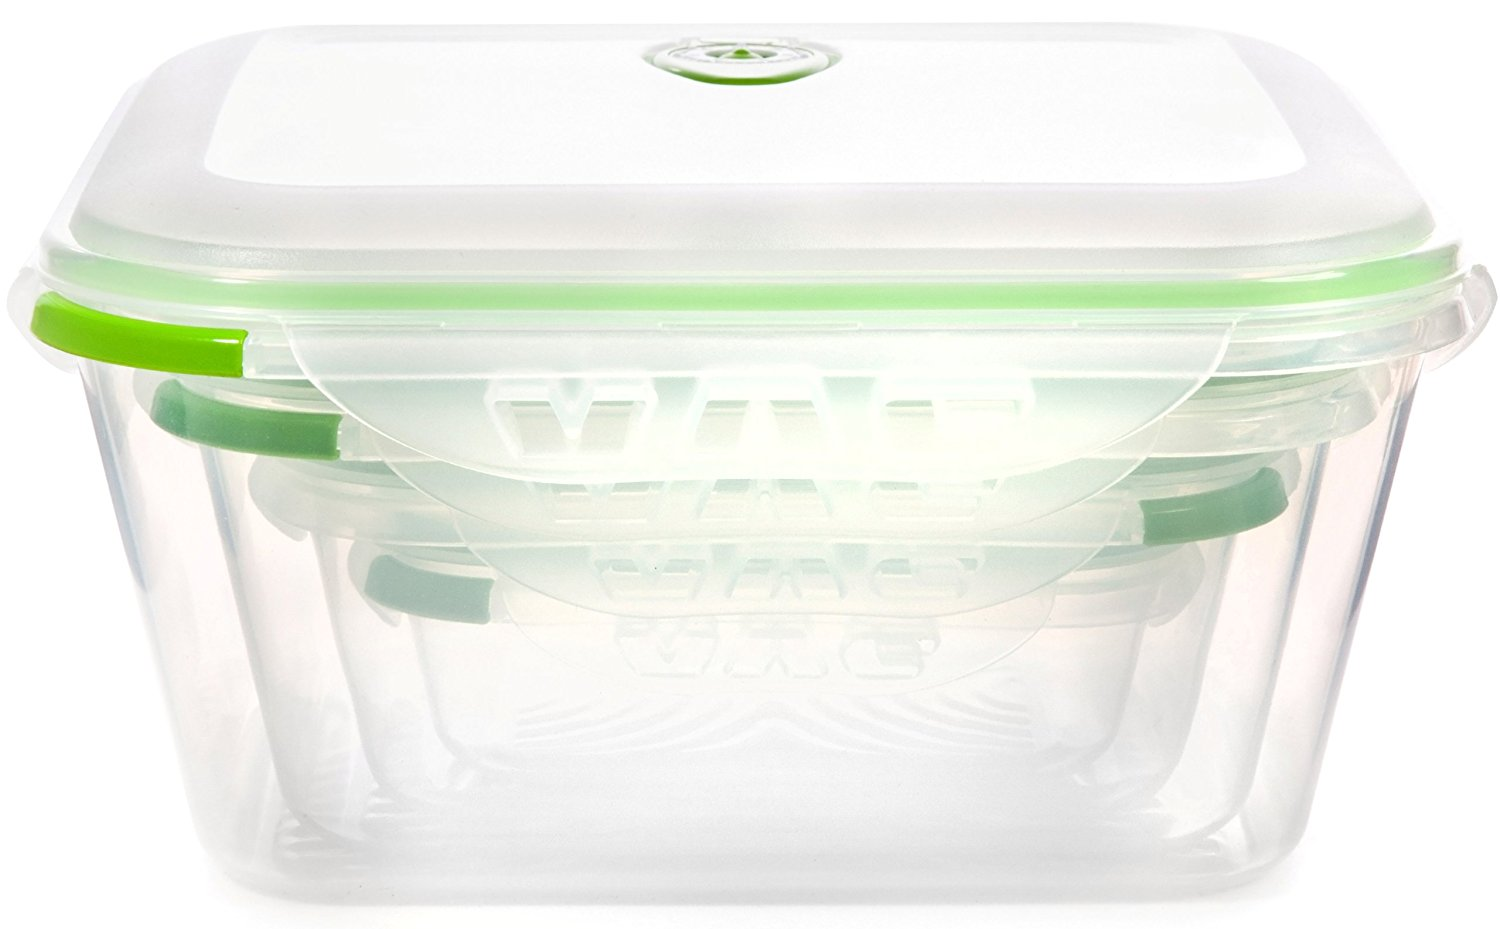 Ozeri INSTAVAC Nesting Food Storage Container Set .